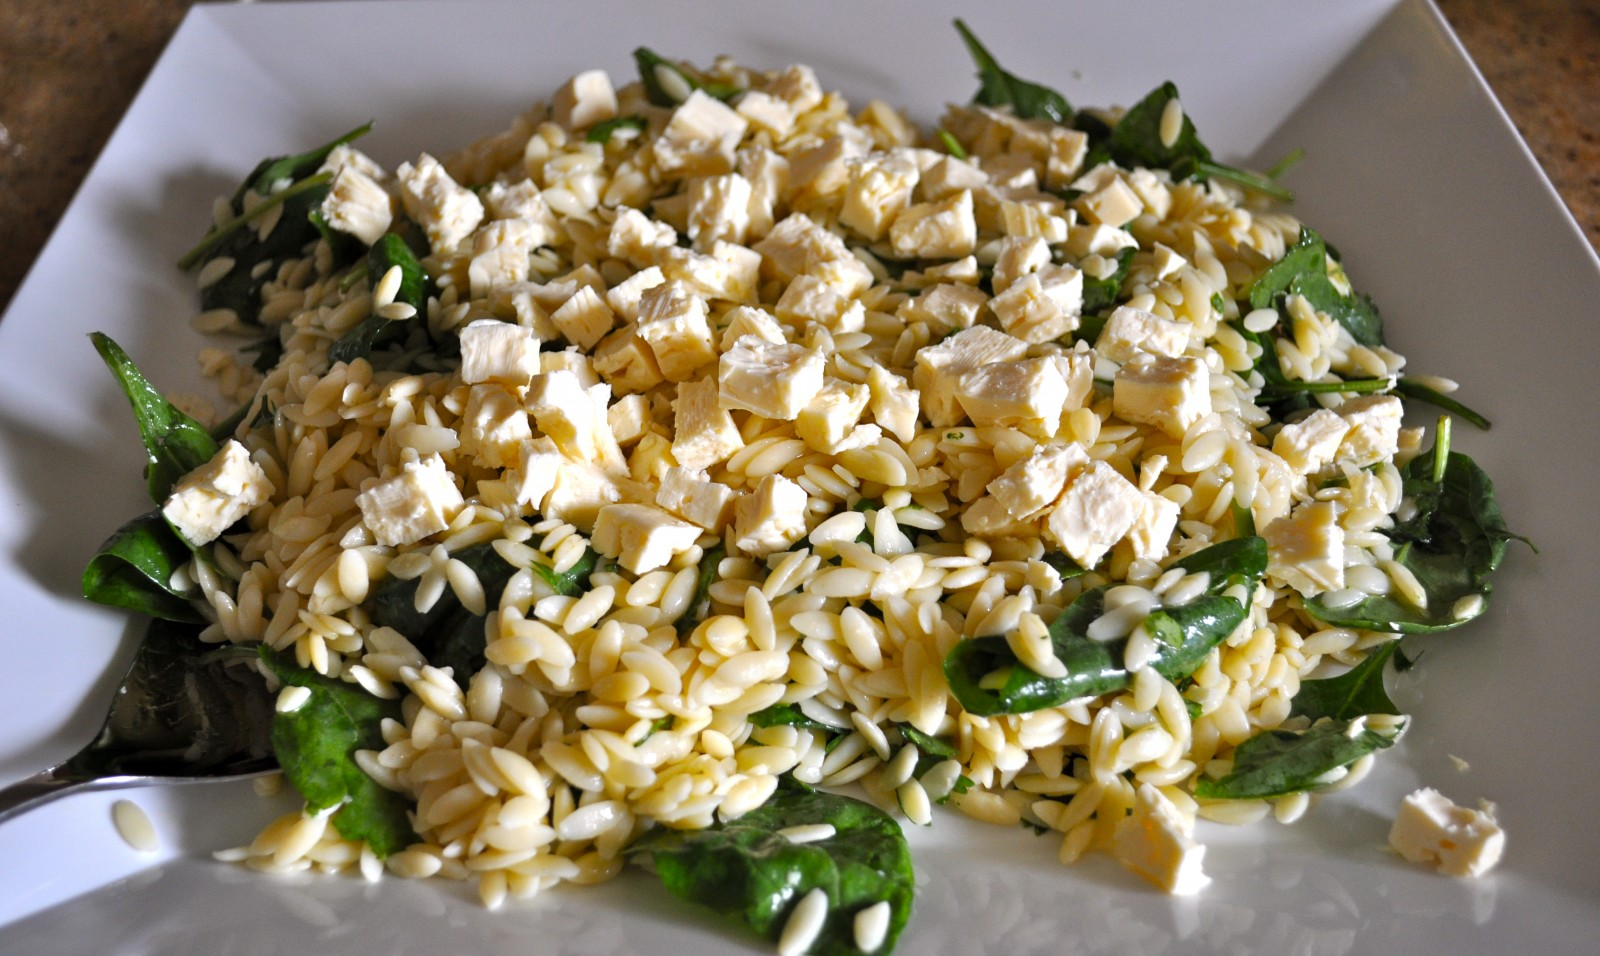 Lemon and feta risoni salad